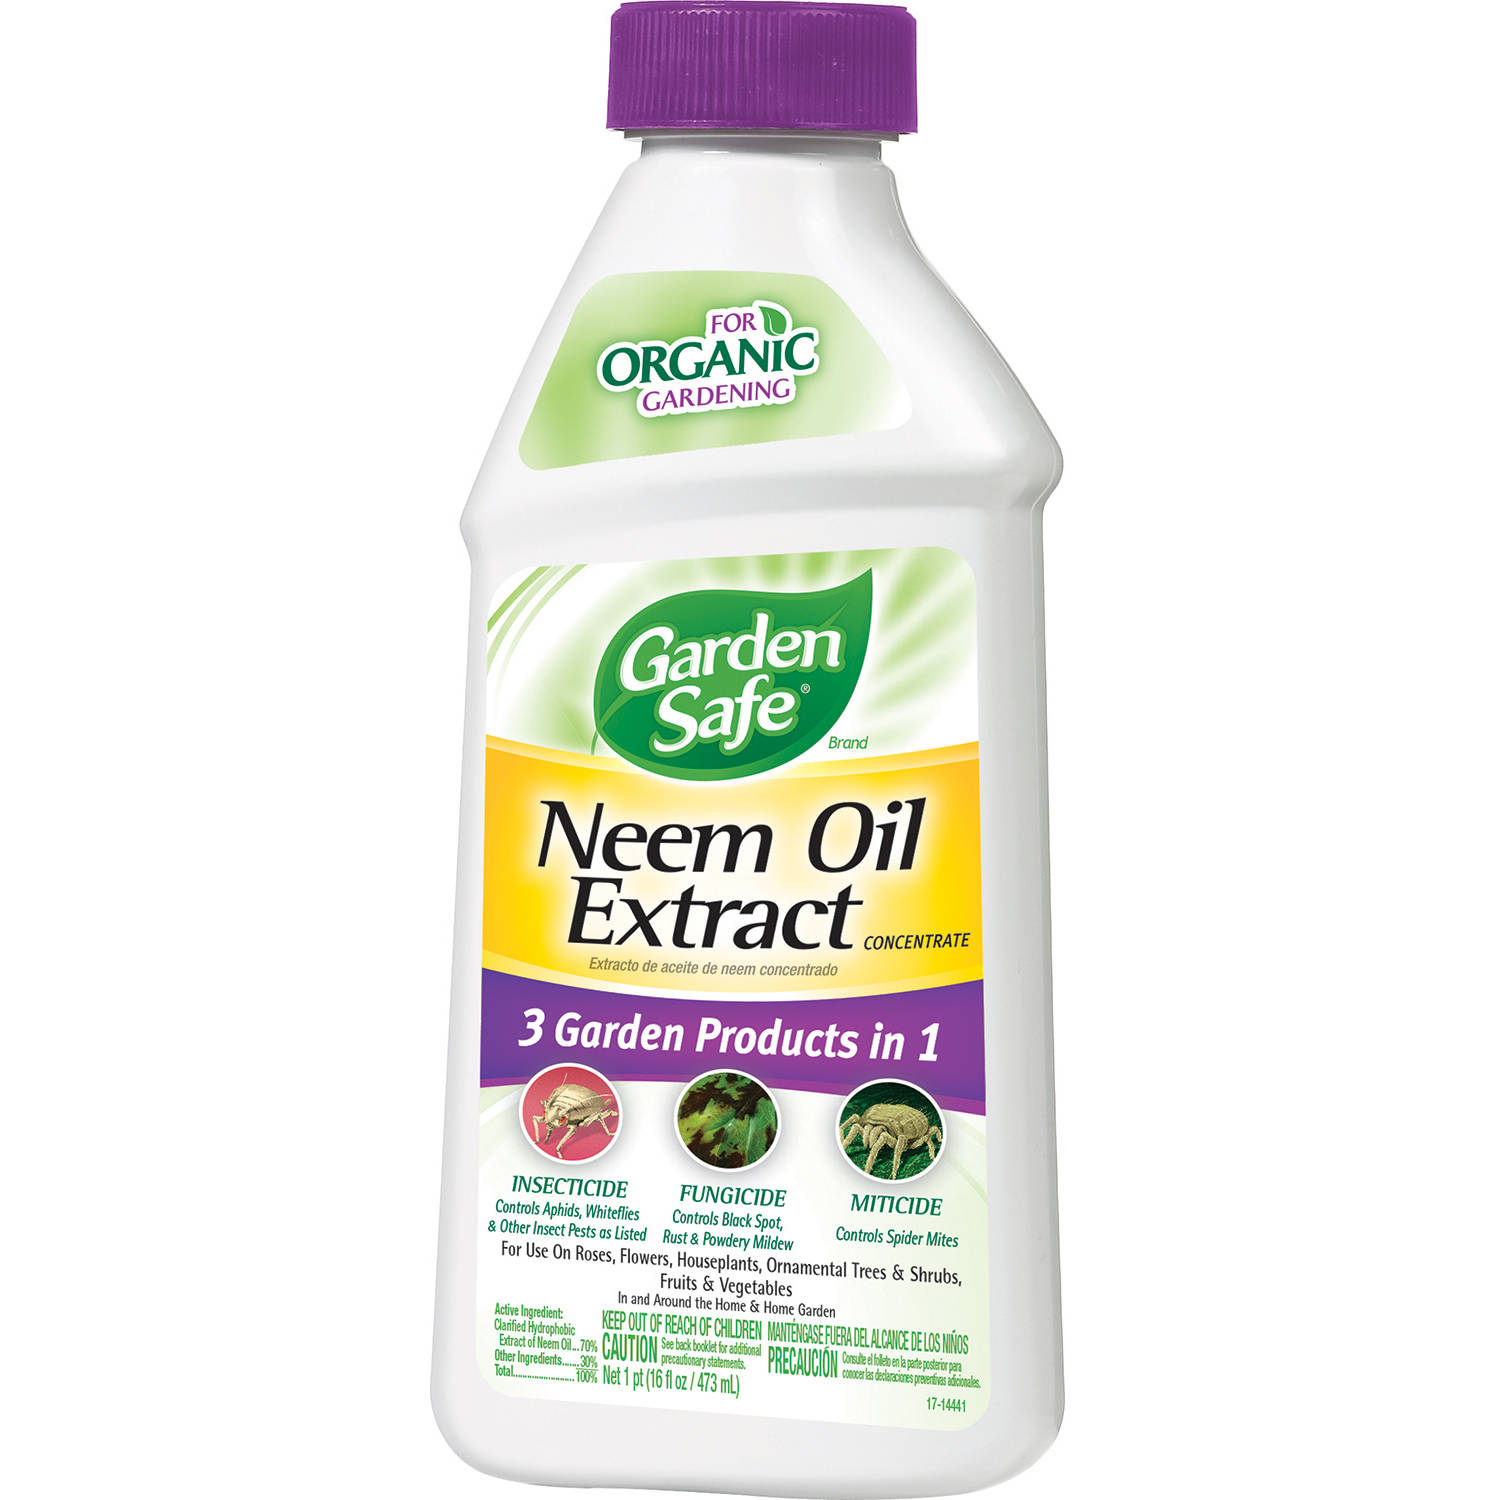 Garden Safe Neem Oil Extract Concentrate, 16 ounces